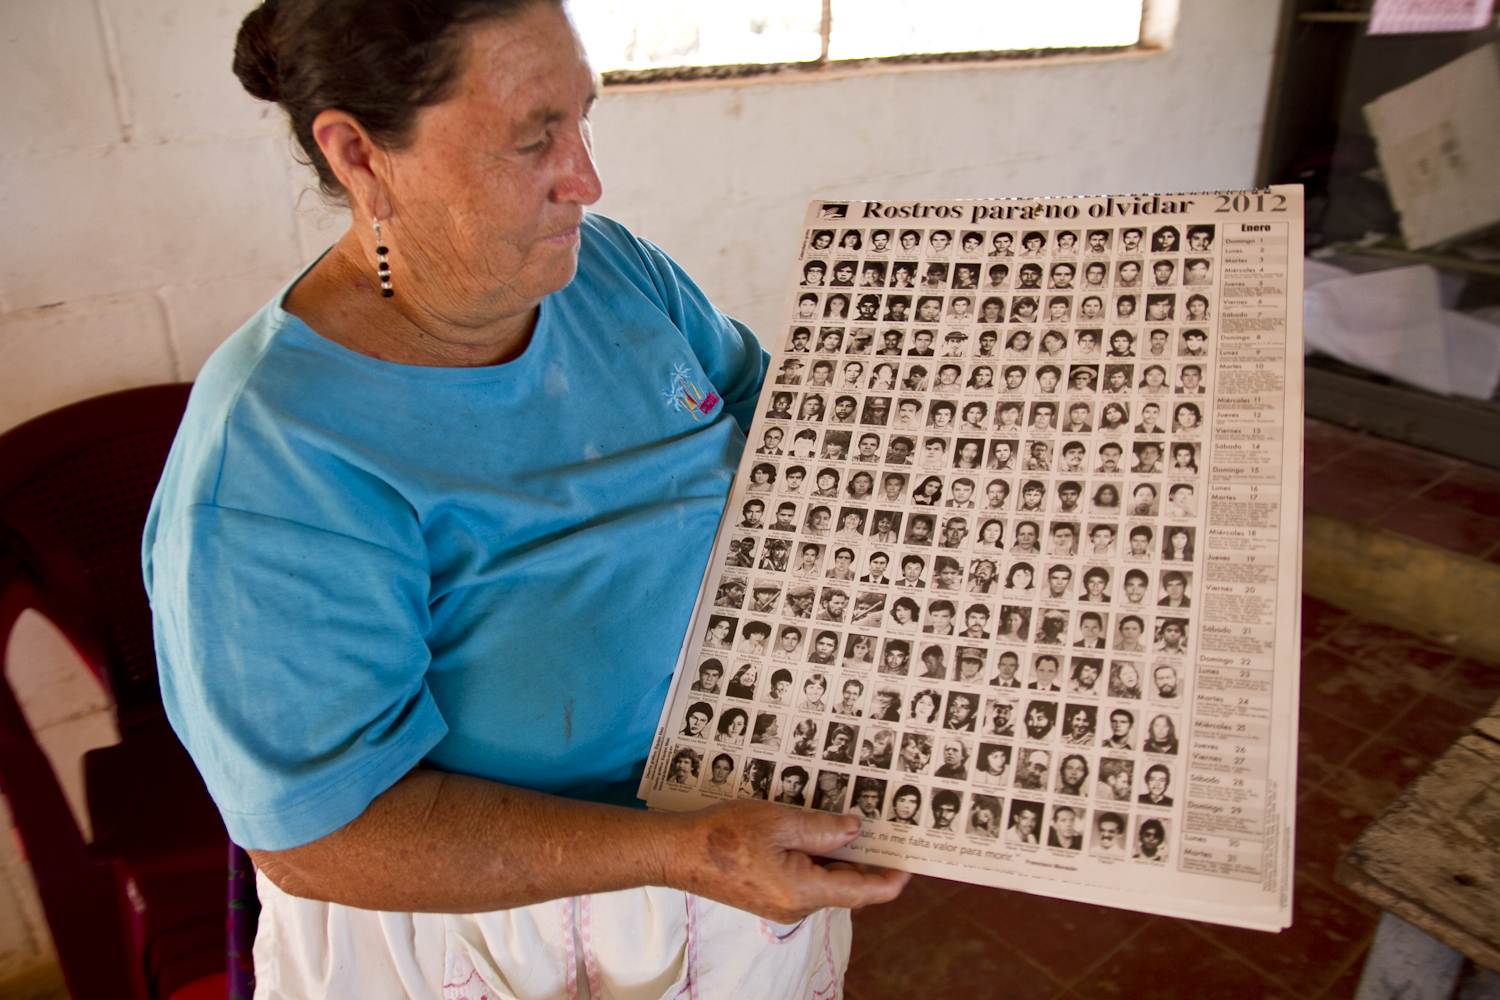 Felicita Osorio Alvarado holds a calendar with photos of the Salvadorans killed throughout the 12-year civil war. Alvarado  lost three brothers and her father in the conflict.